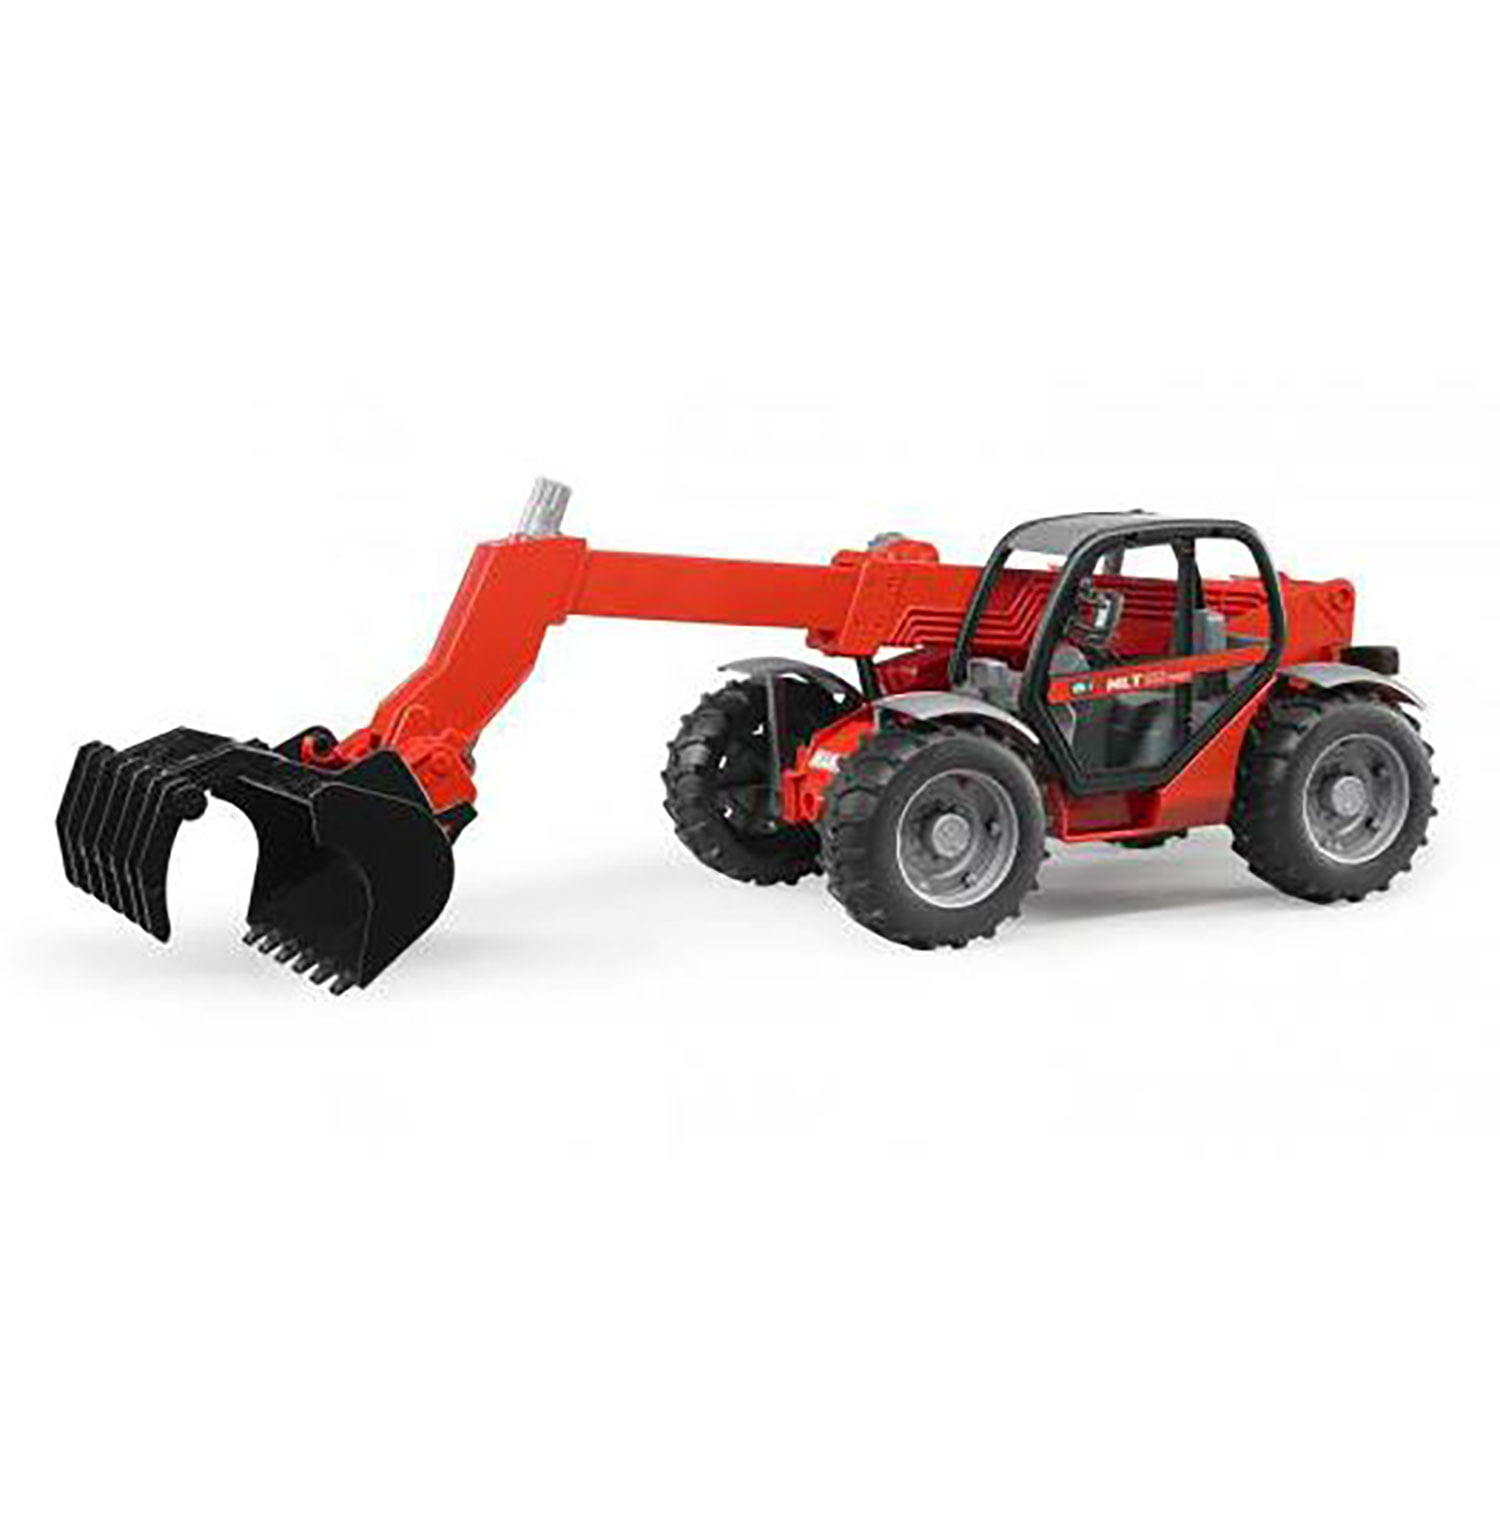 Bruder Toys Manitou Teleskpoic Turbo Play Tractor with Lift Loader MLT 633, Red by Bruder Toys